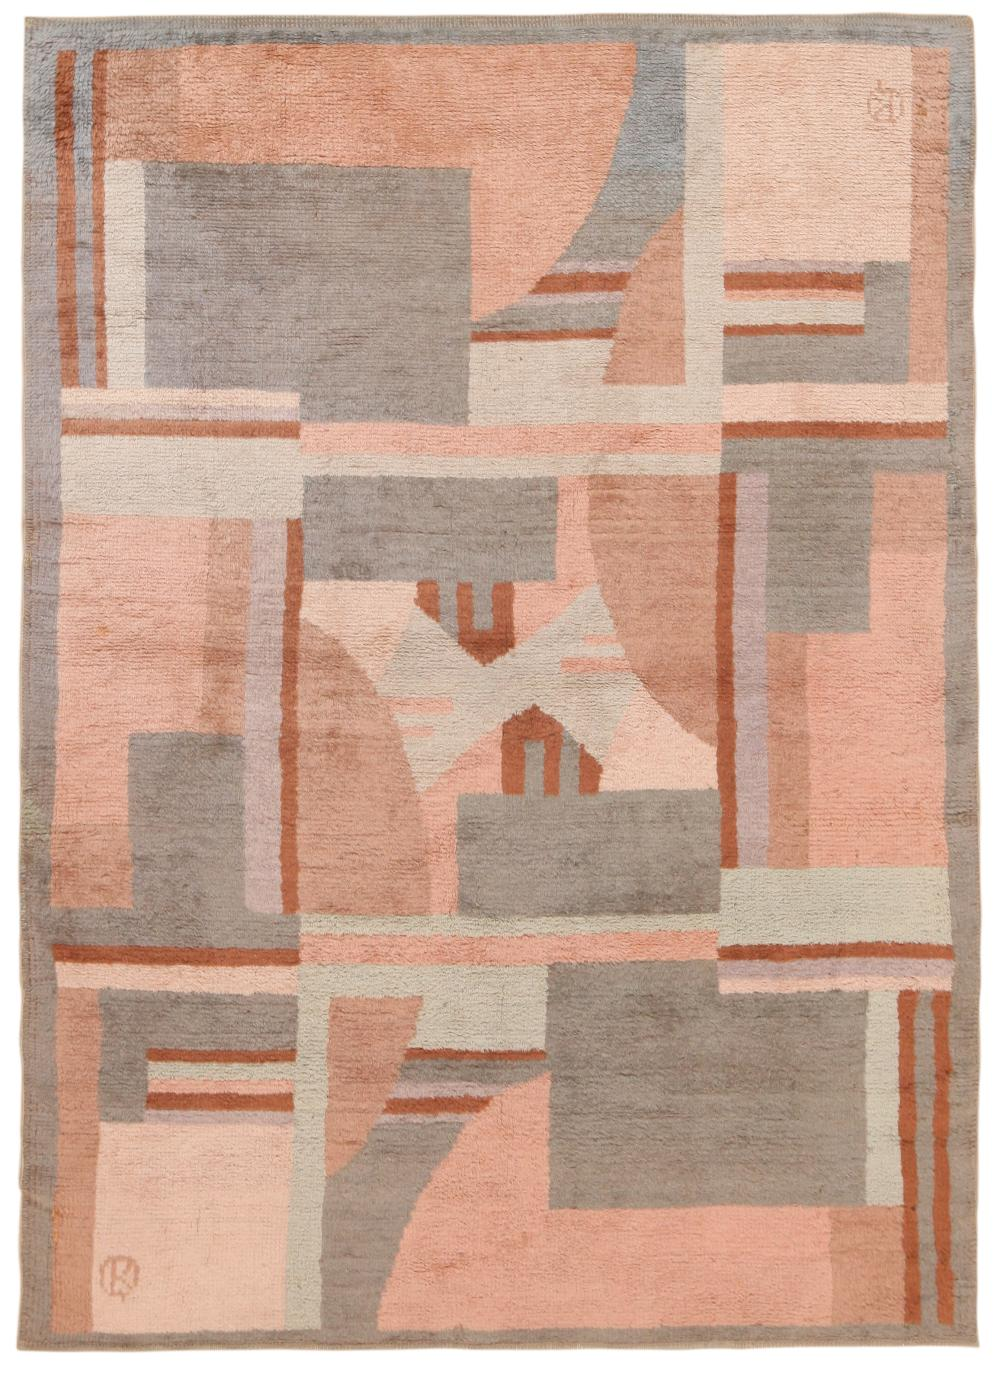 VINTAGE FRENCH MODERNIST RUG, WITH A SIGNATURE. 7 ft 8 in x 5 ft 7 in (2.33m x 1.70m).